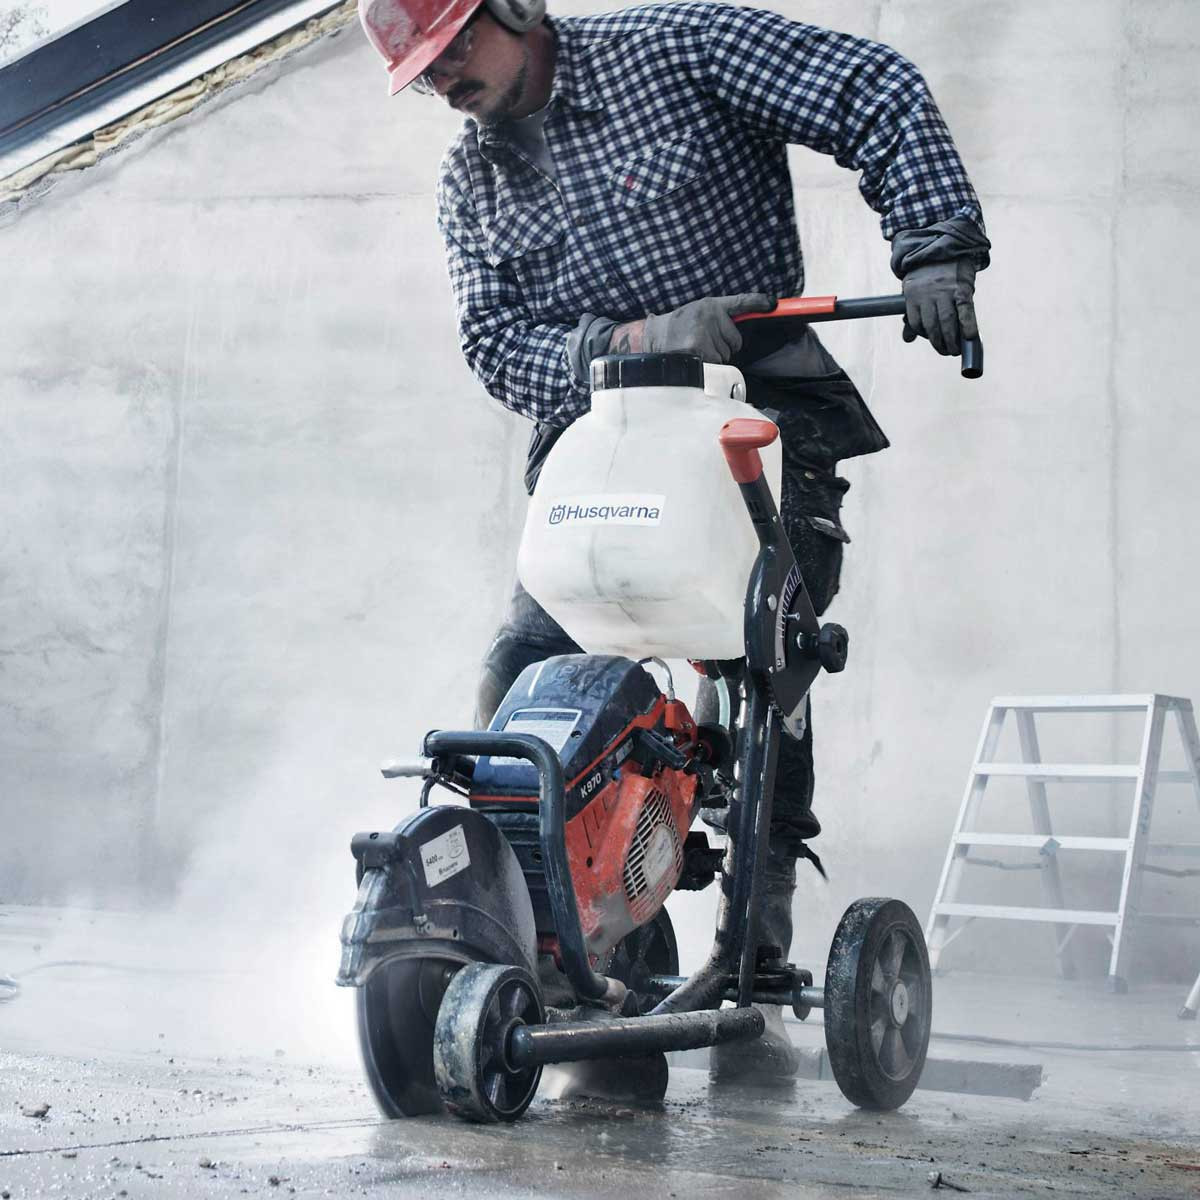 Husqvarna saw Cutting kart concrete